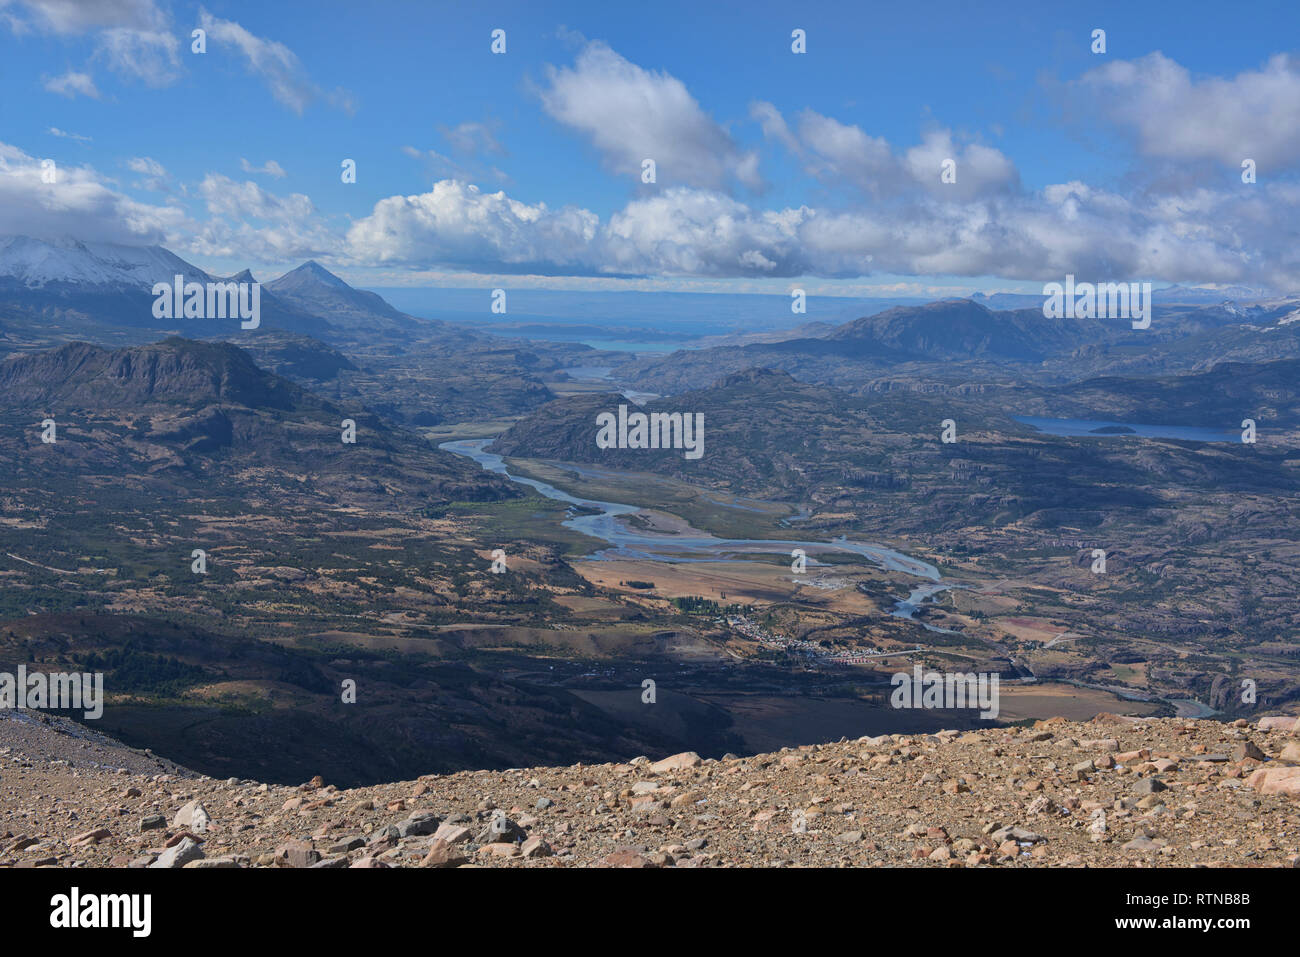 Looking out at the Rio Ibanez and Villa Cerro Castillo, Aysen, Patagonia, Chile - Stock Image